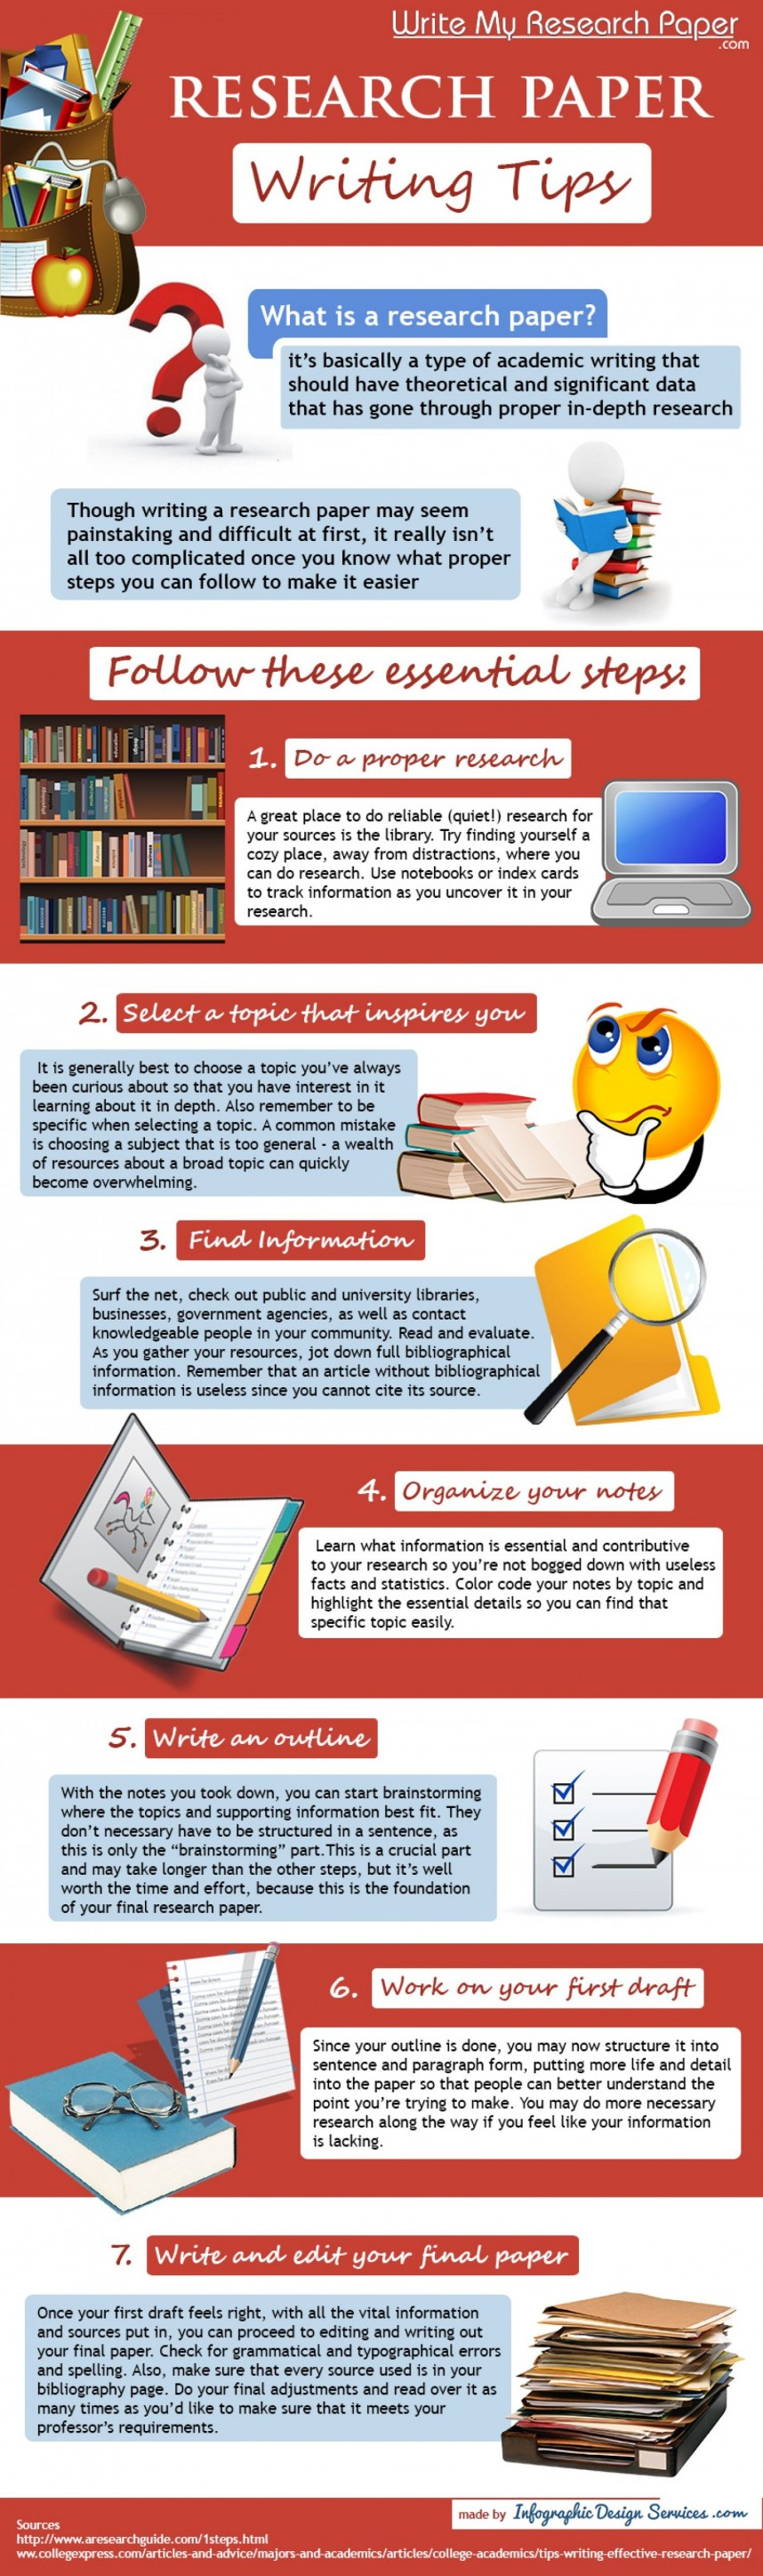 003 Research Paper Tips Awesome College Writing A